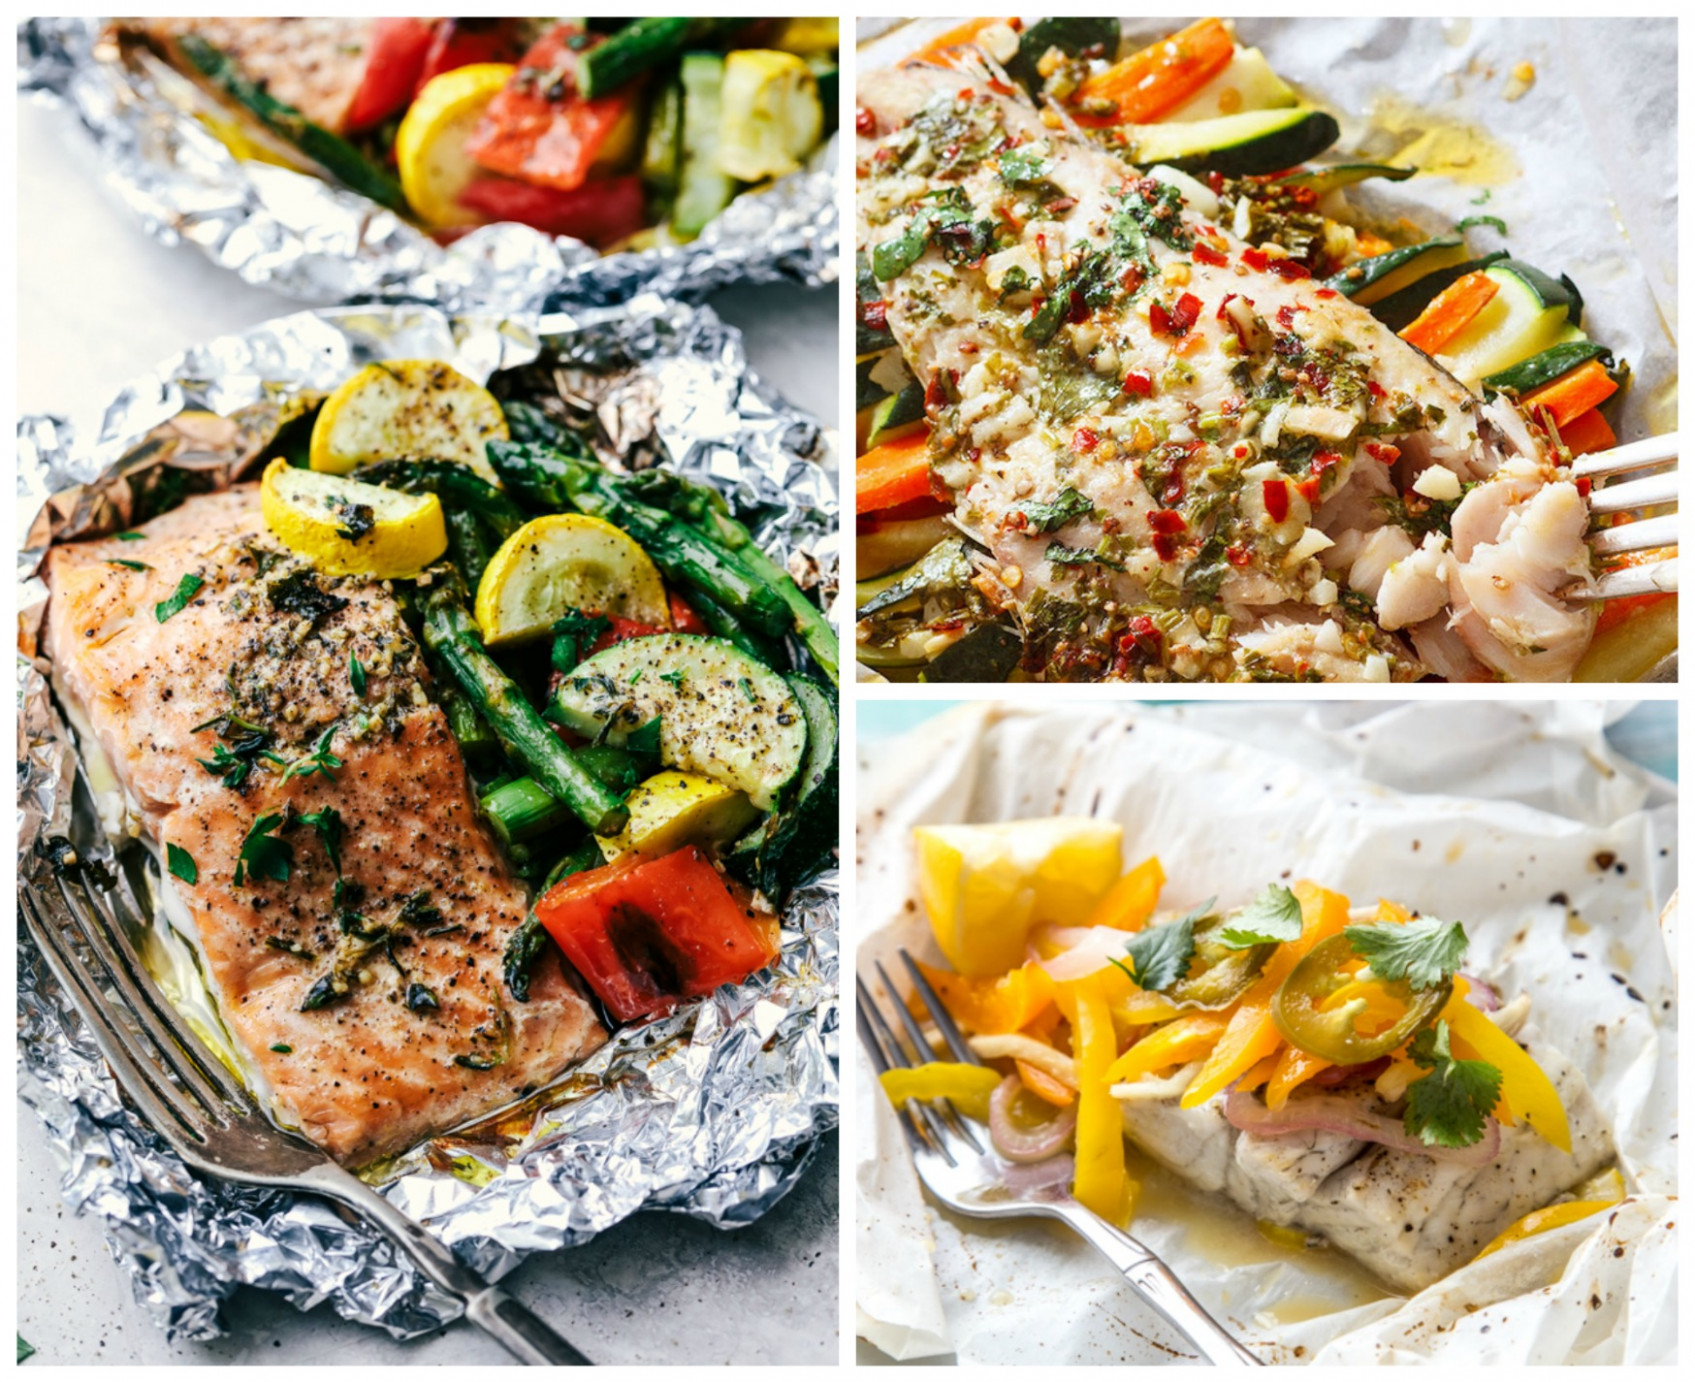 13 Easy Fish Foil Packet Dinners for Healthy Weight Loss - food recipes healthy weight loss